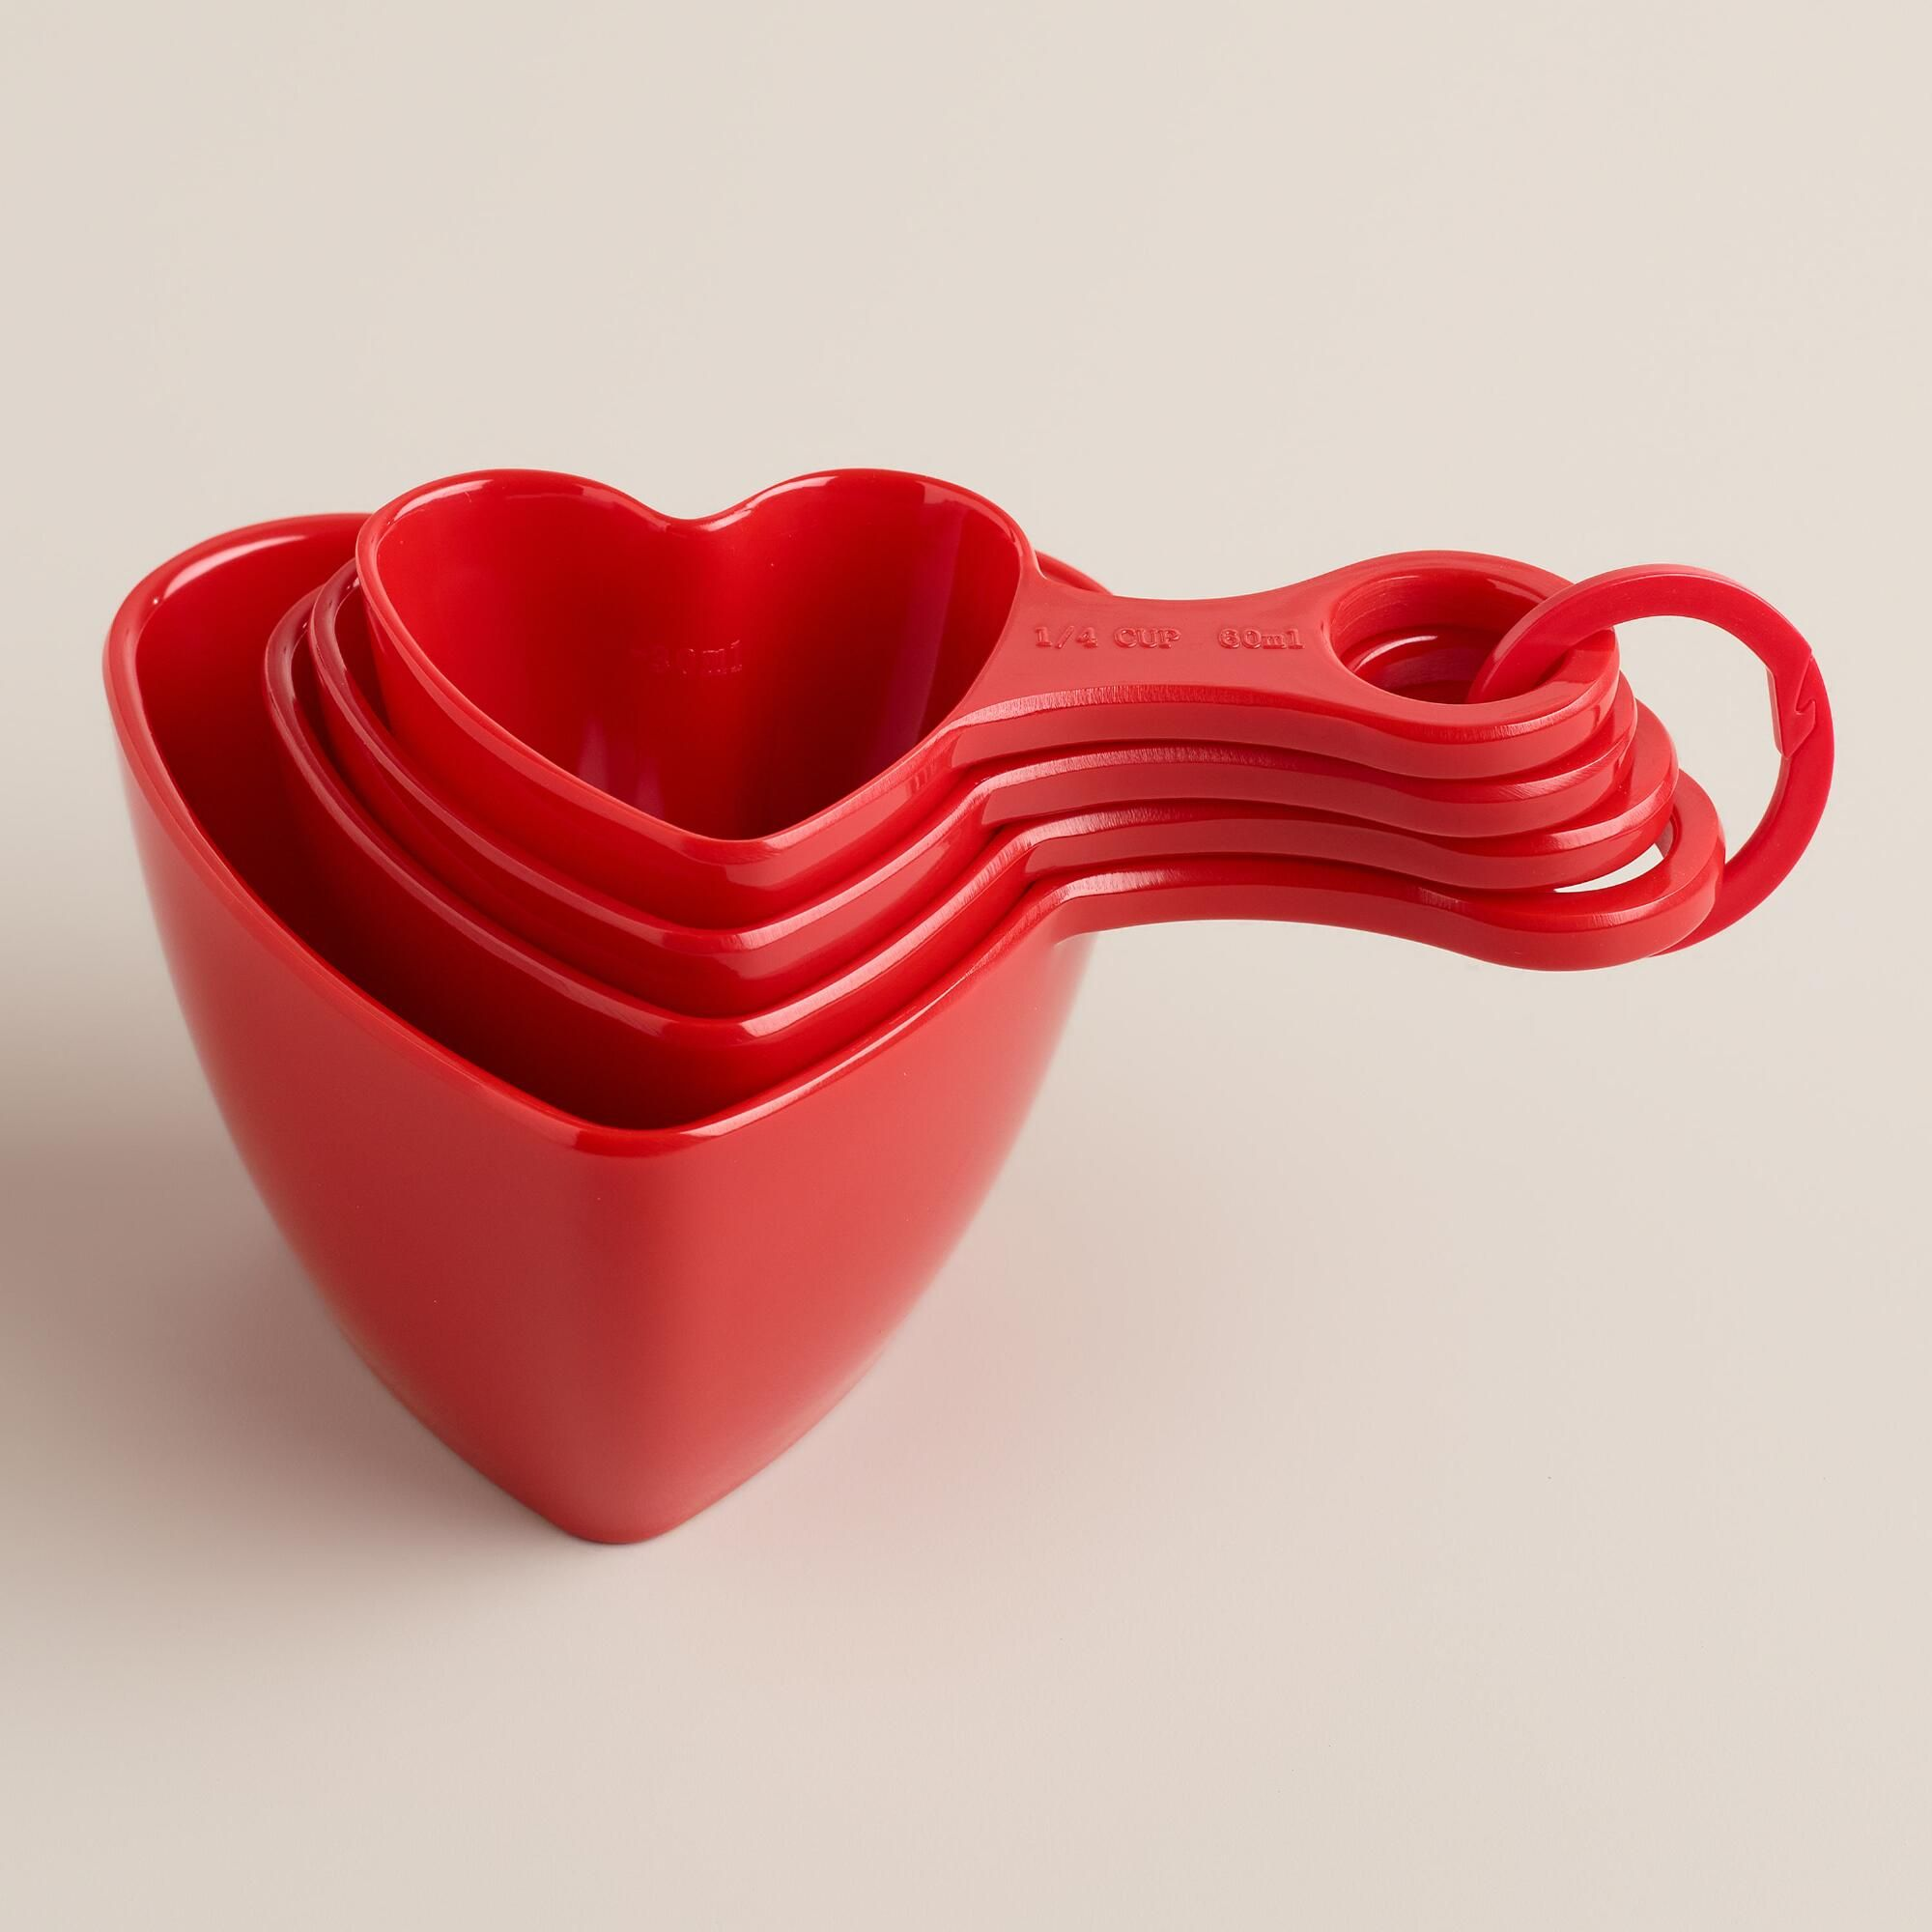 Made of melamine, our heart-shaped measuring cups are perfect kitchen tools for cooks and bakers who make everything with love.